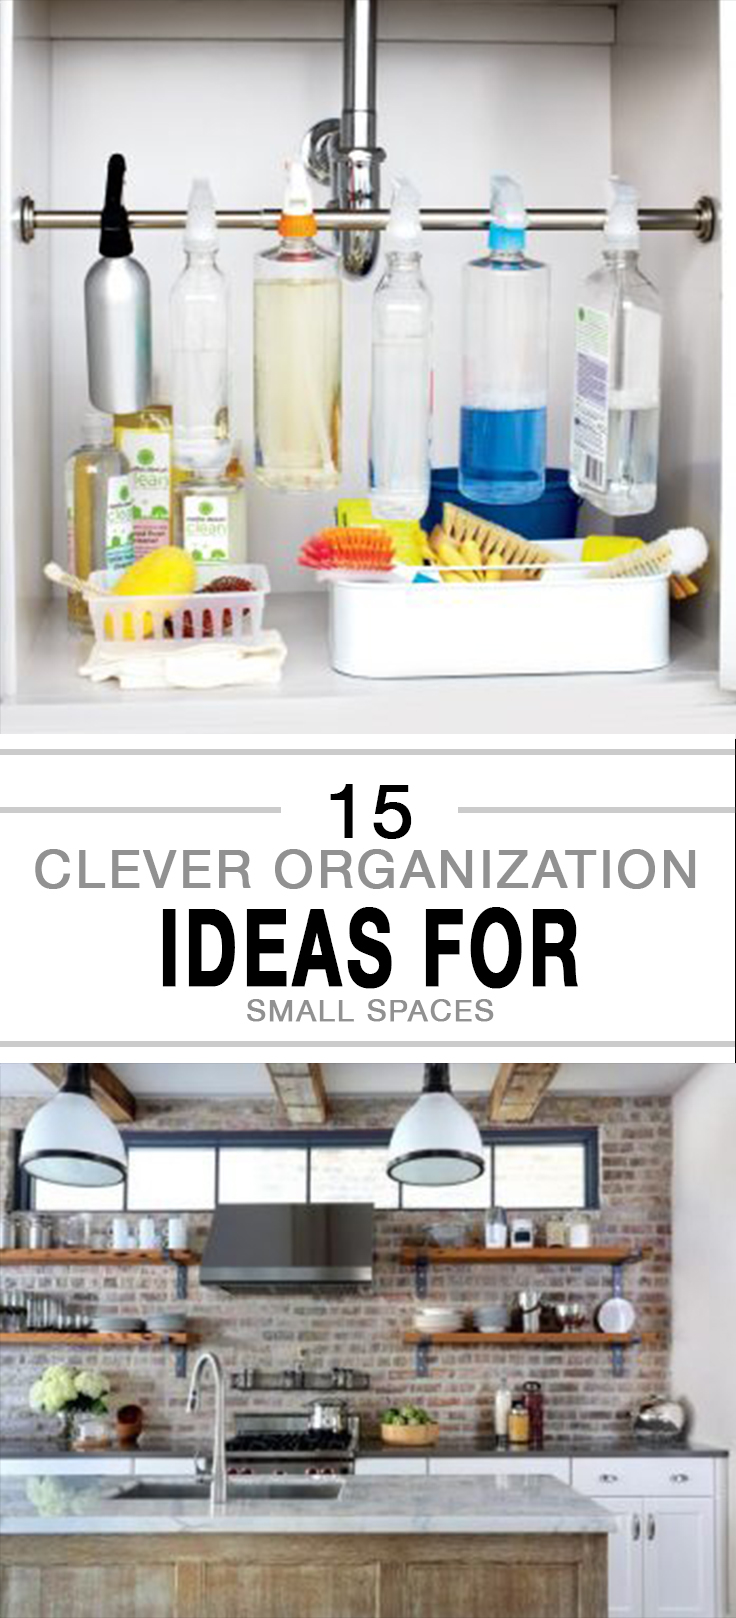 Clever organization hacks organization tips diy organization organization hacks popular pin